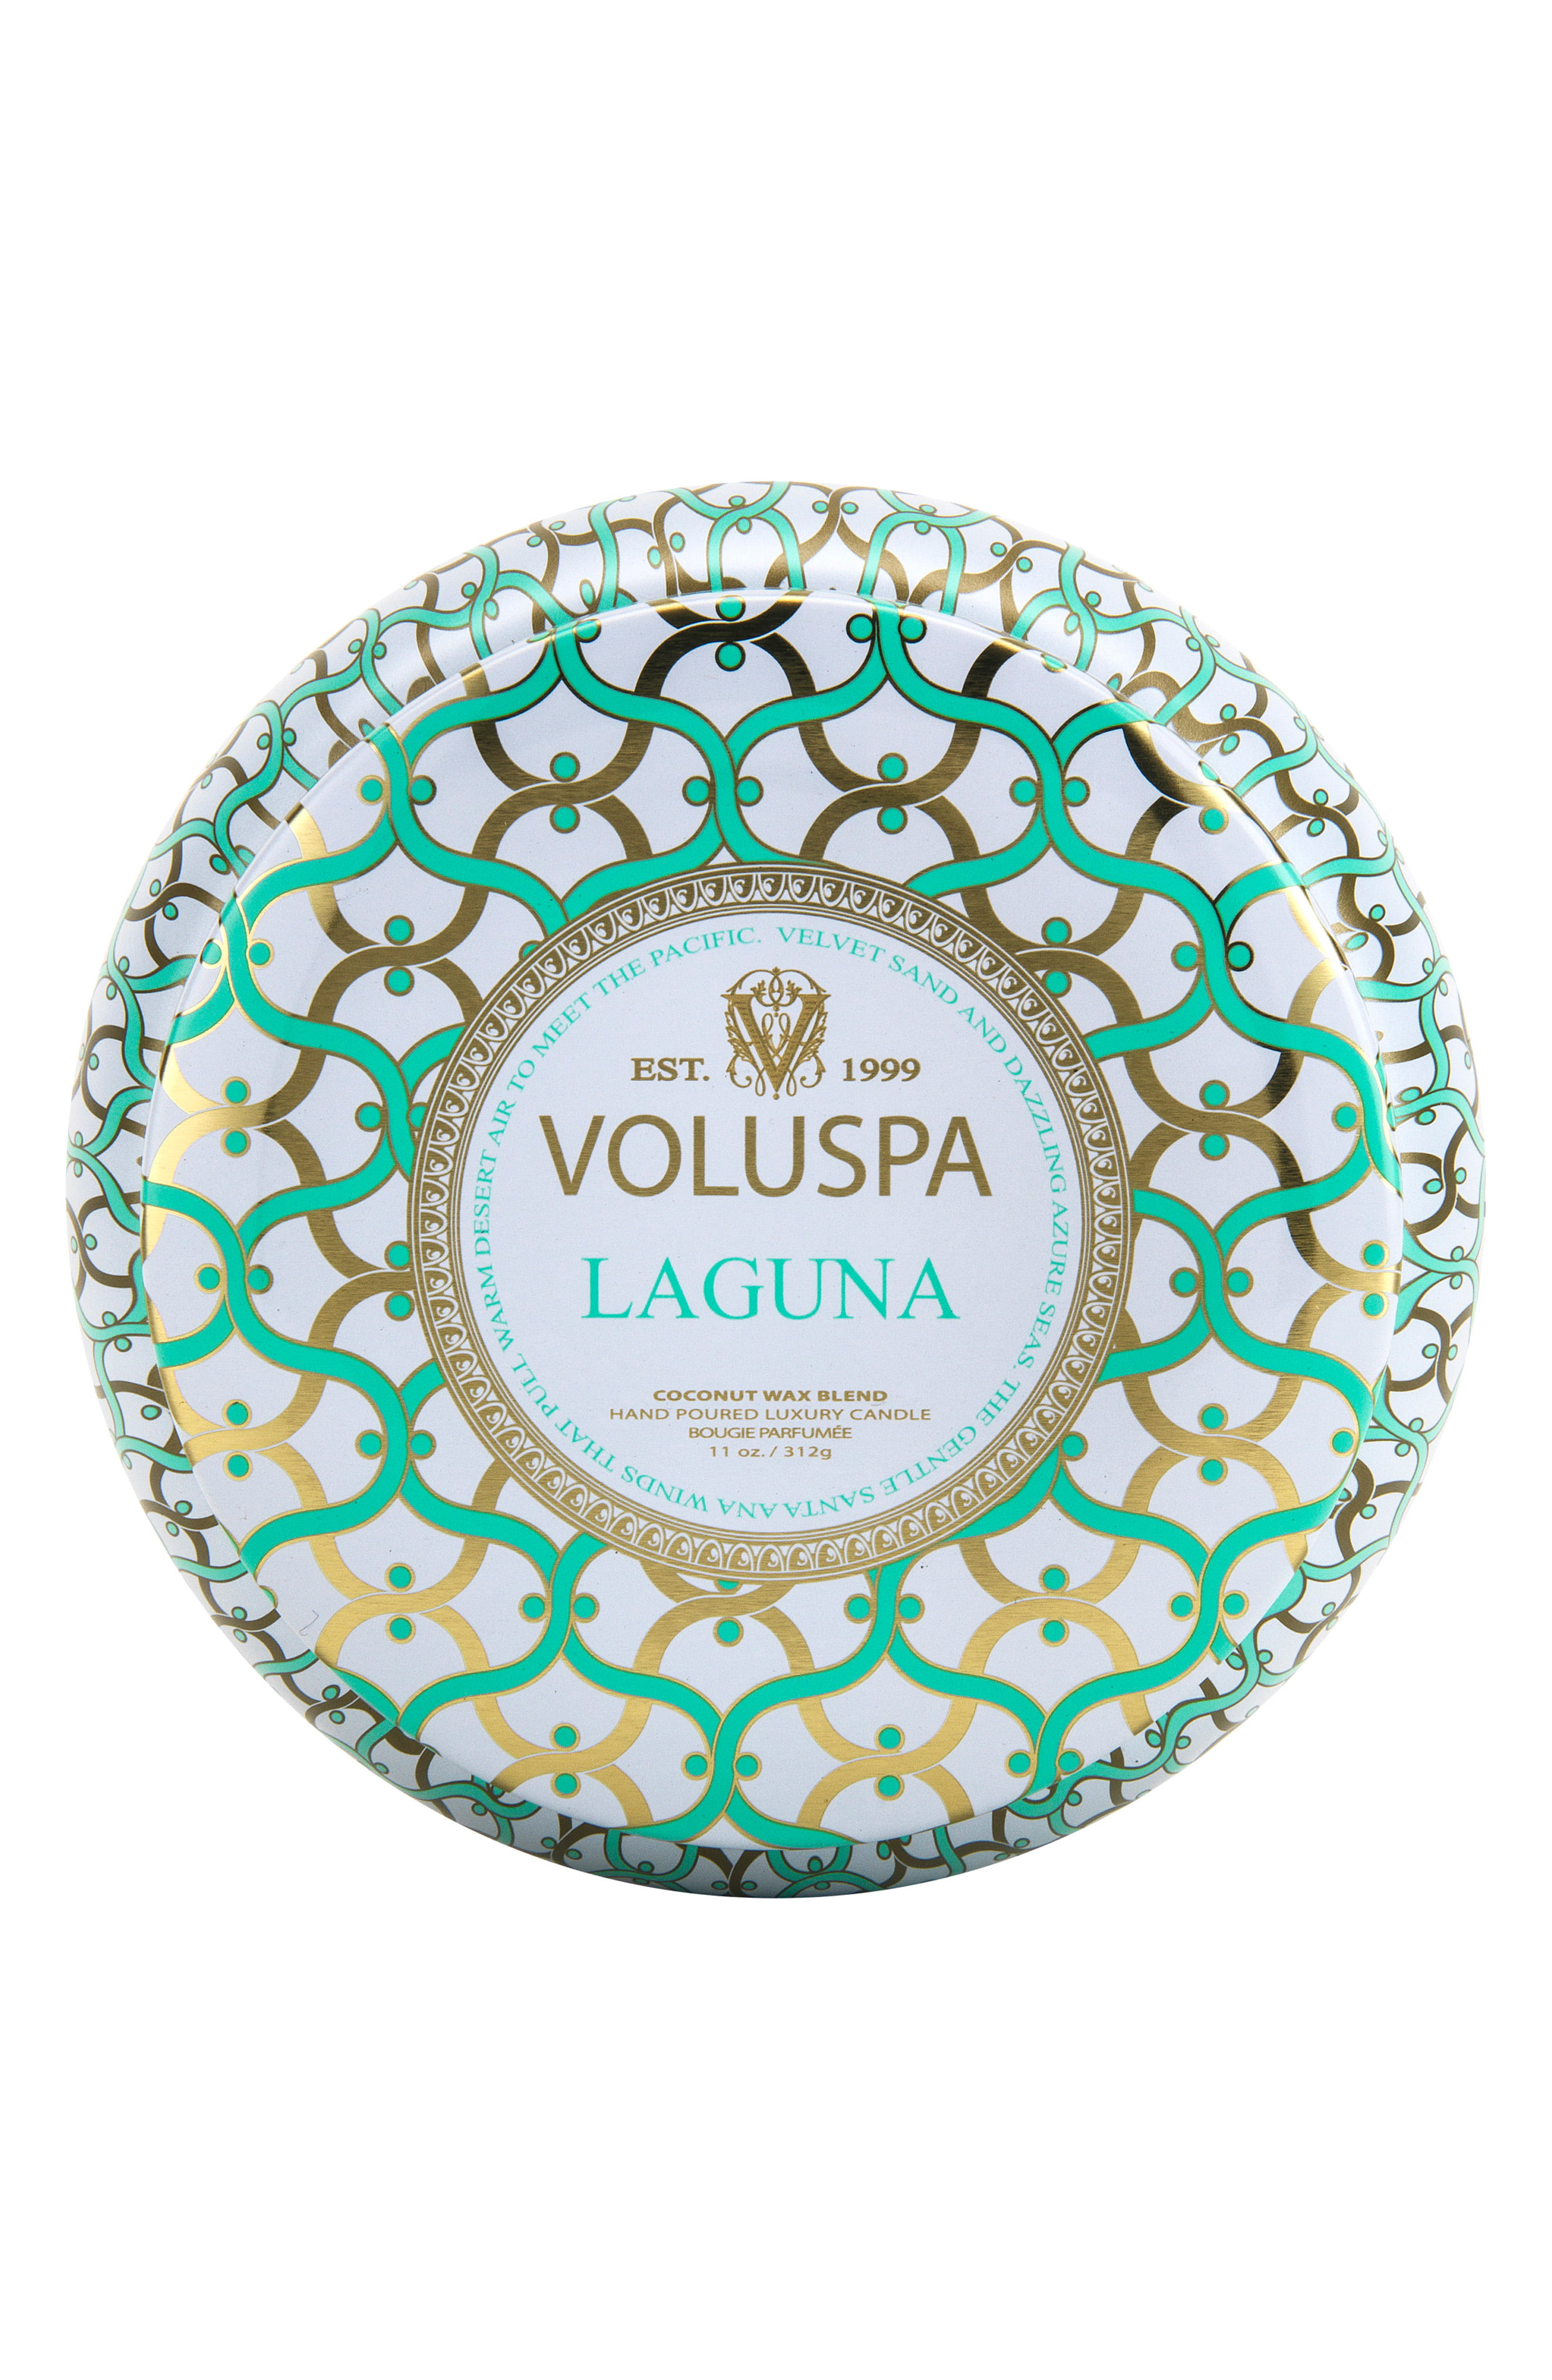 Voluspa Maison Blanc Laguna Maison Metallo Two Wick Candle